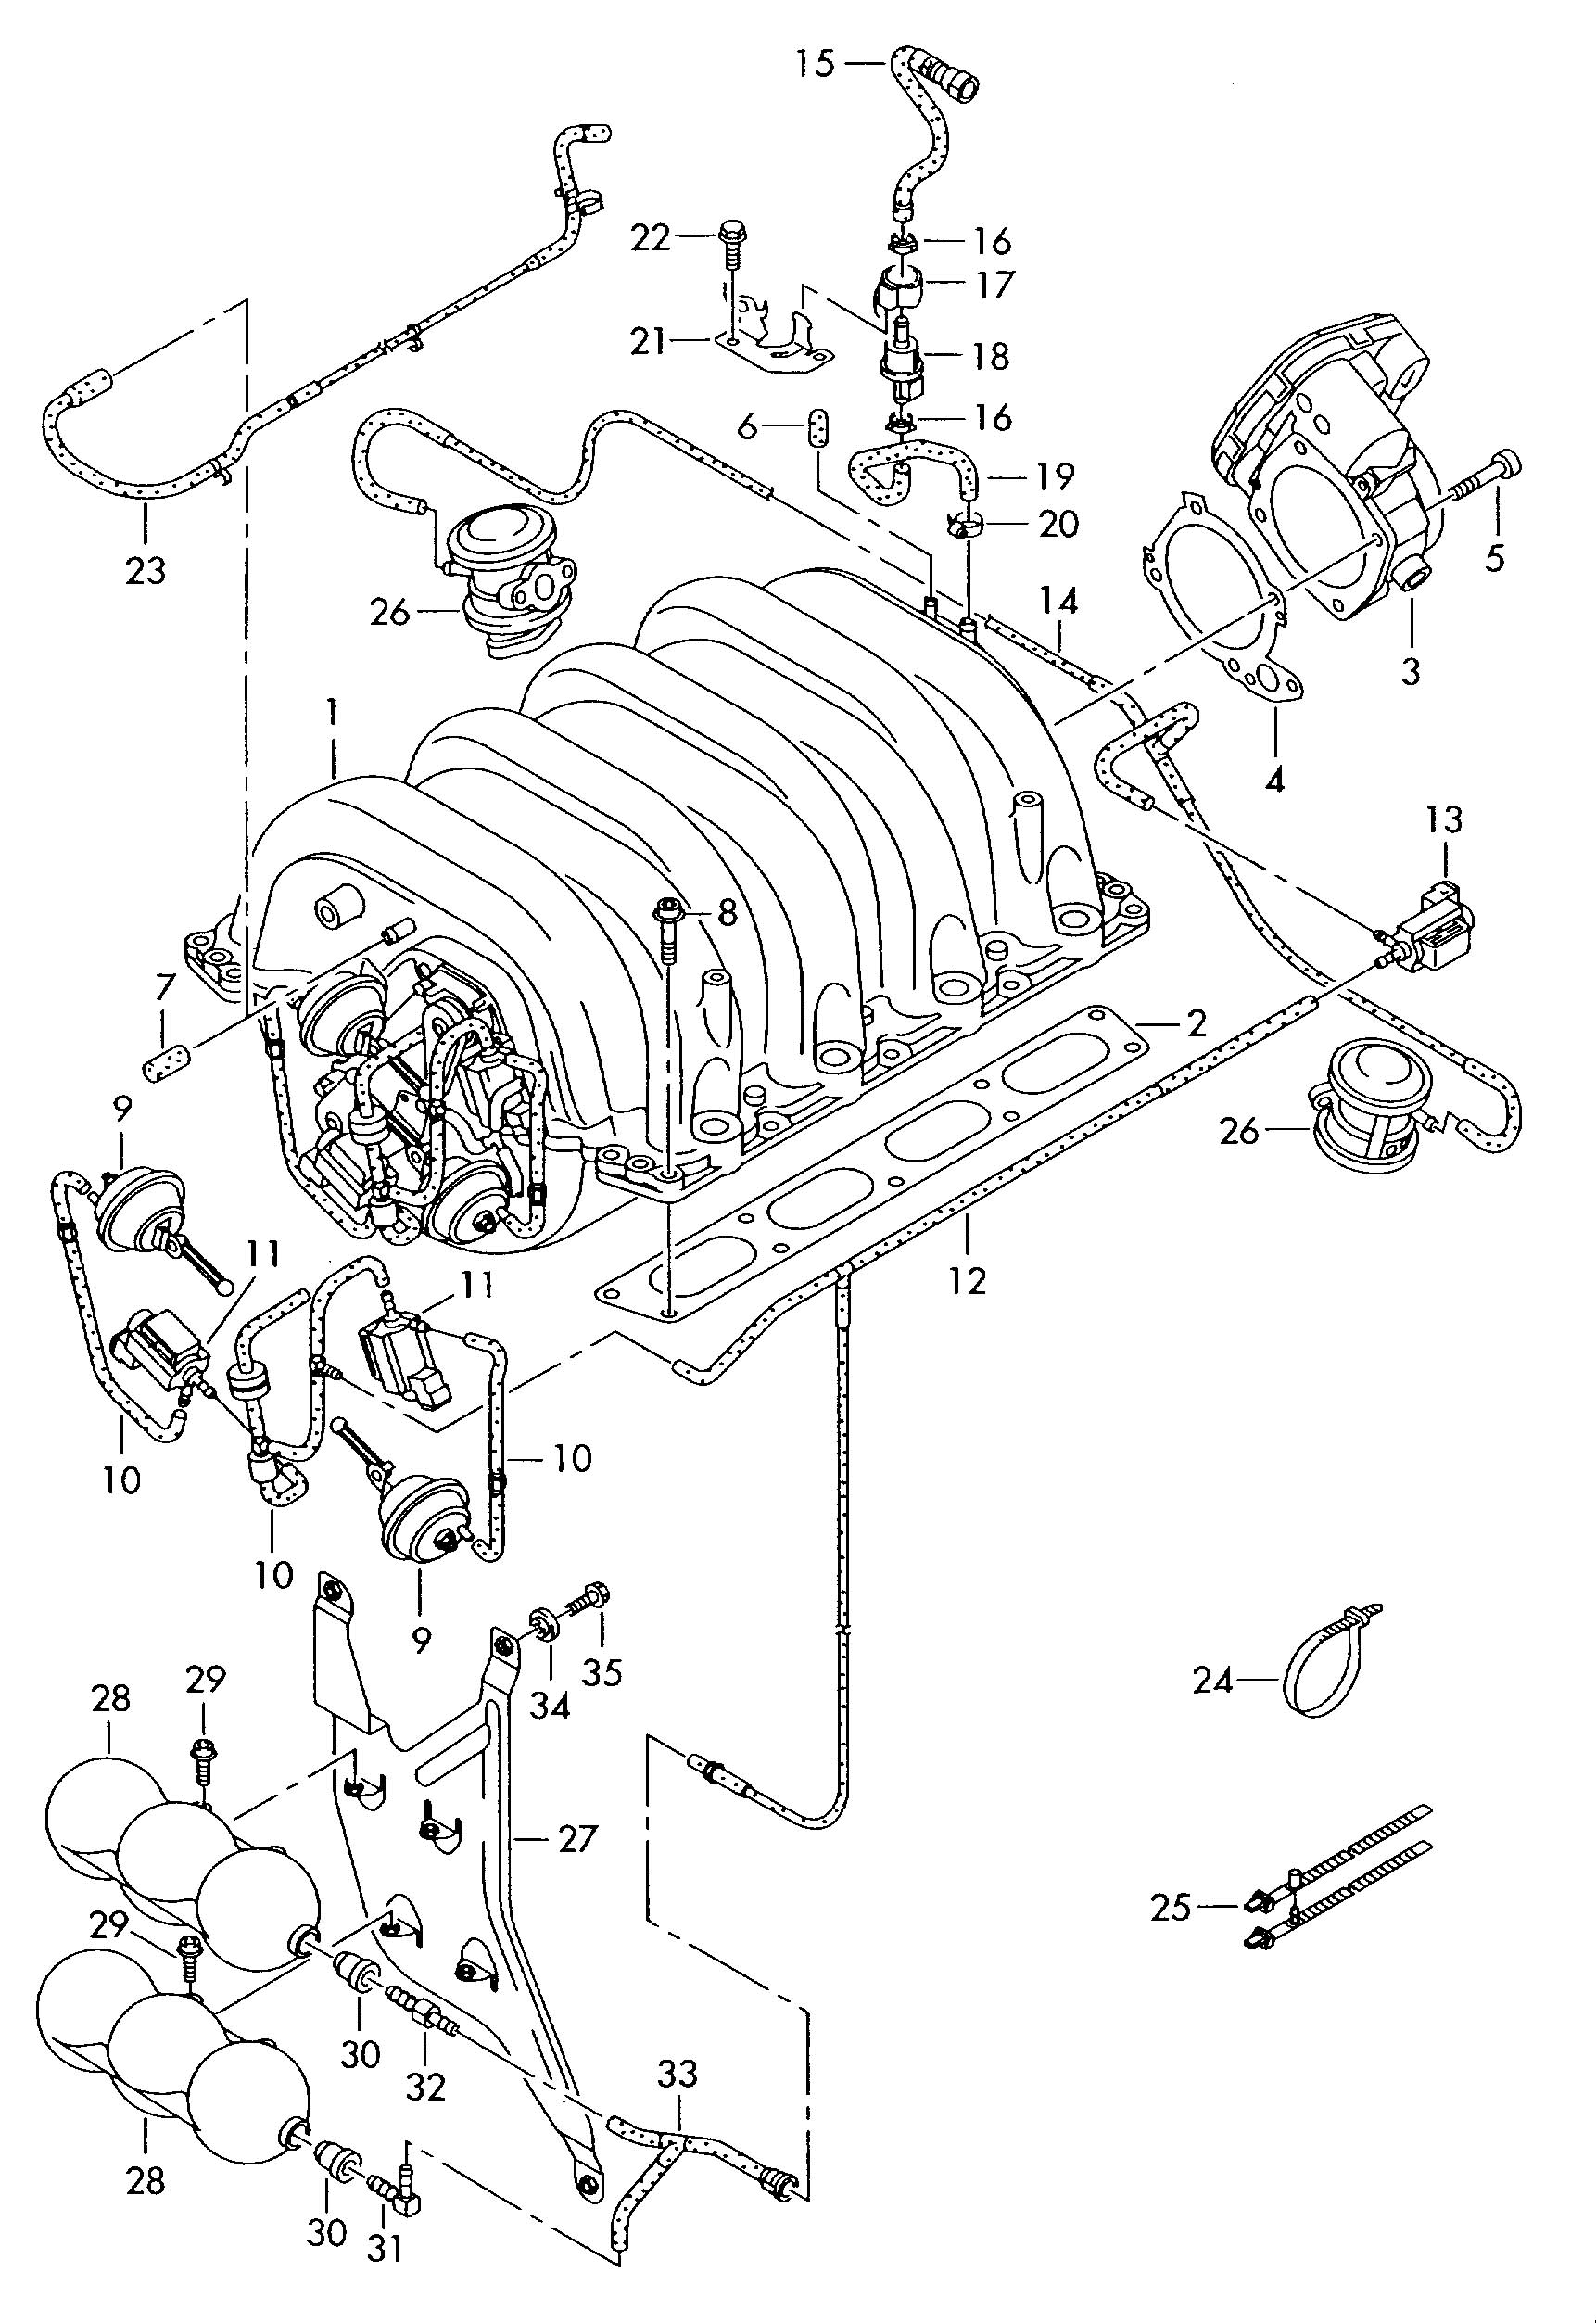 1979 jeep cj7 v8 wiring diagram